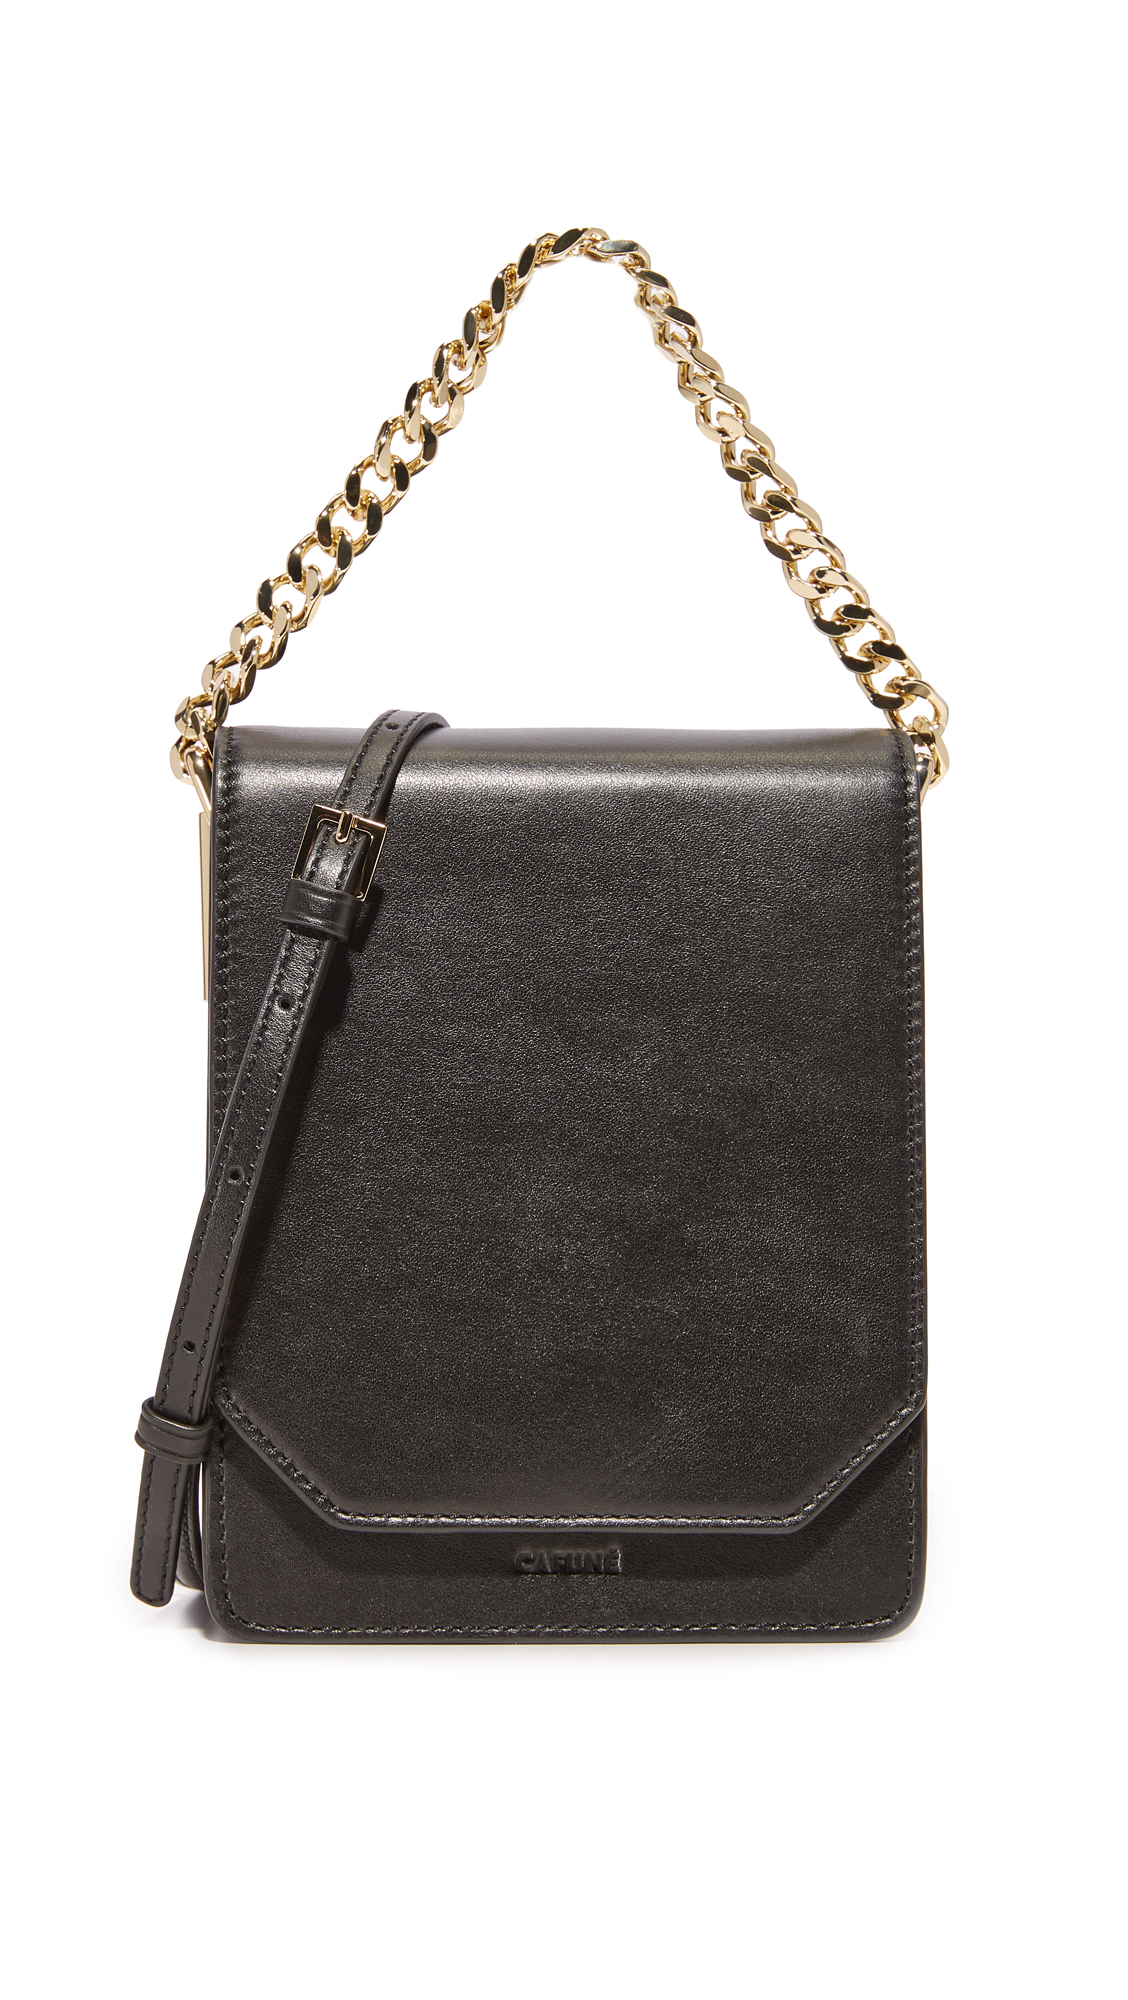 Cafune Bellows Cross Body Bag - Black